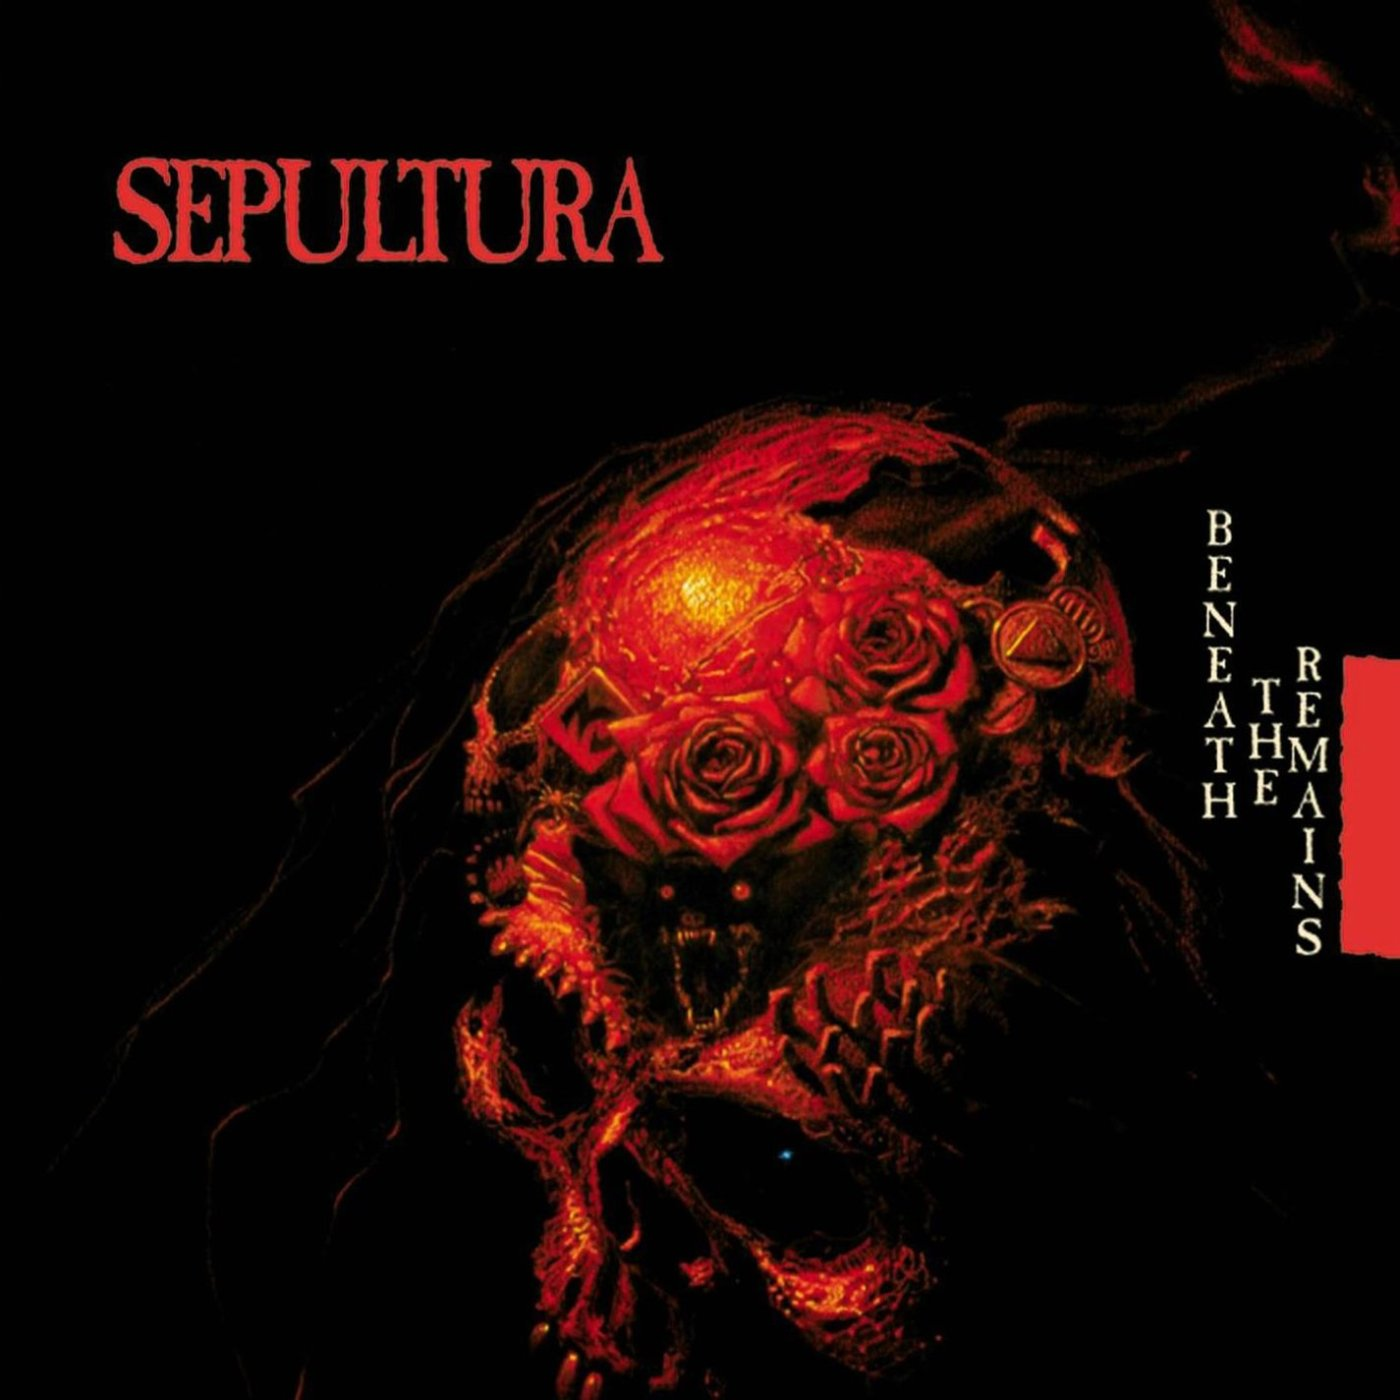 1989 Sepultura Released Its Third Album And First For Roadrunner Records Beneath The Remains This Was That Broke Brazilian Metal